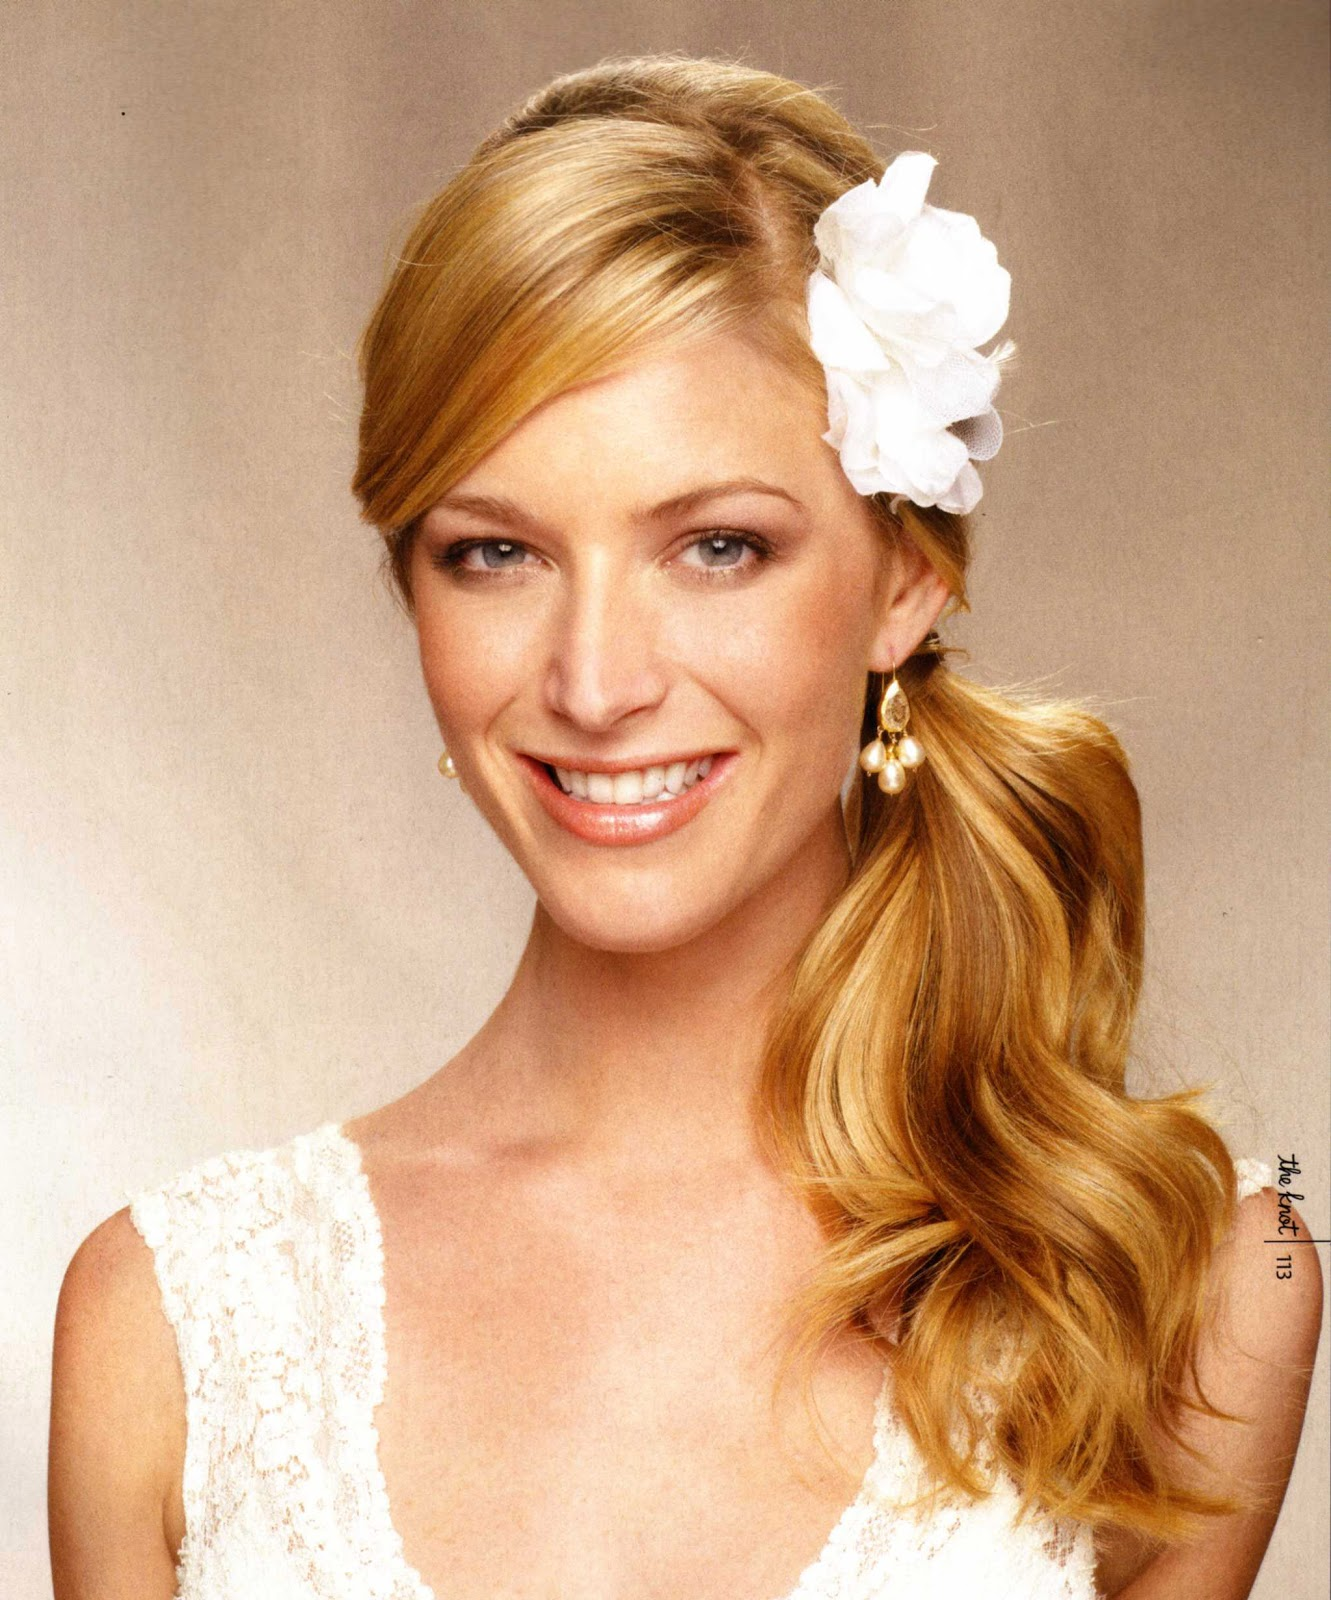 Long Hair Style For Your Wedding Wedding Bells